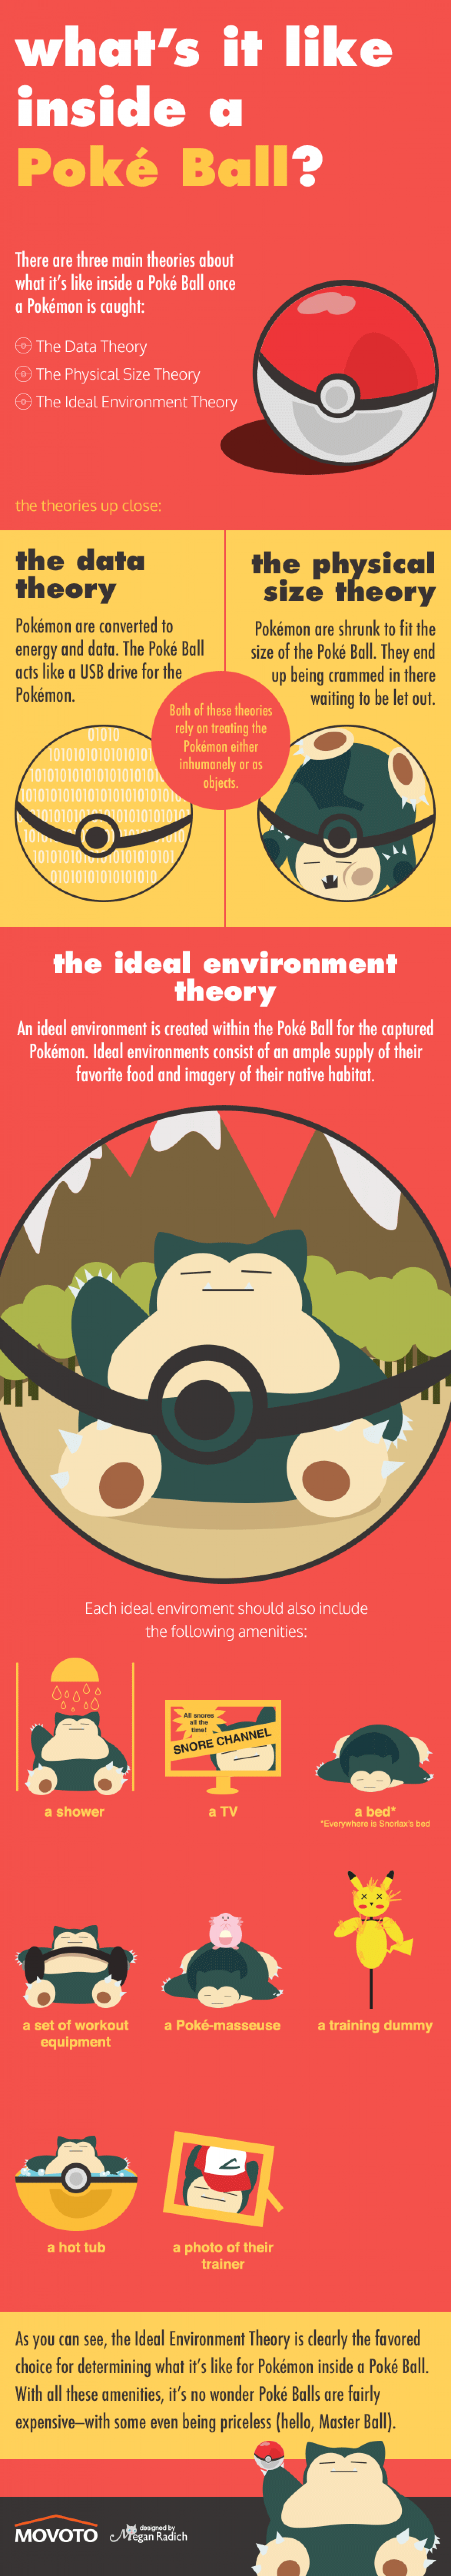 What's it like inside a Poké Ball? Infographic